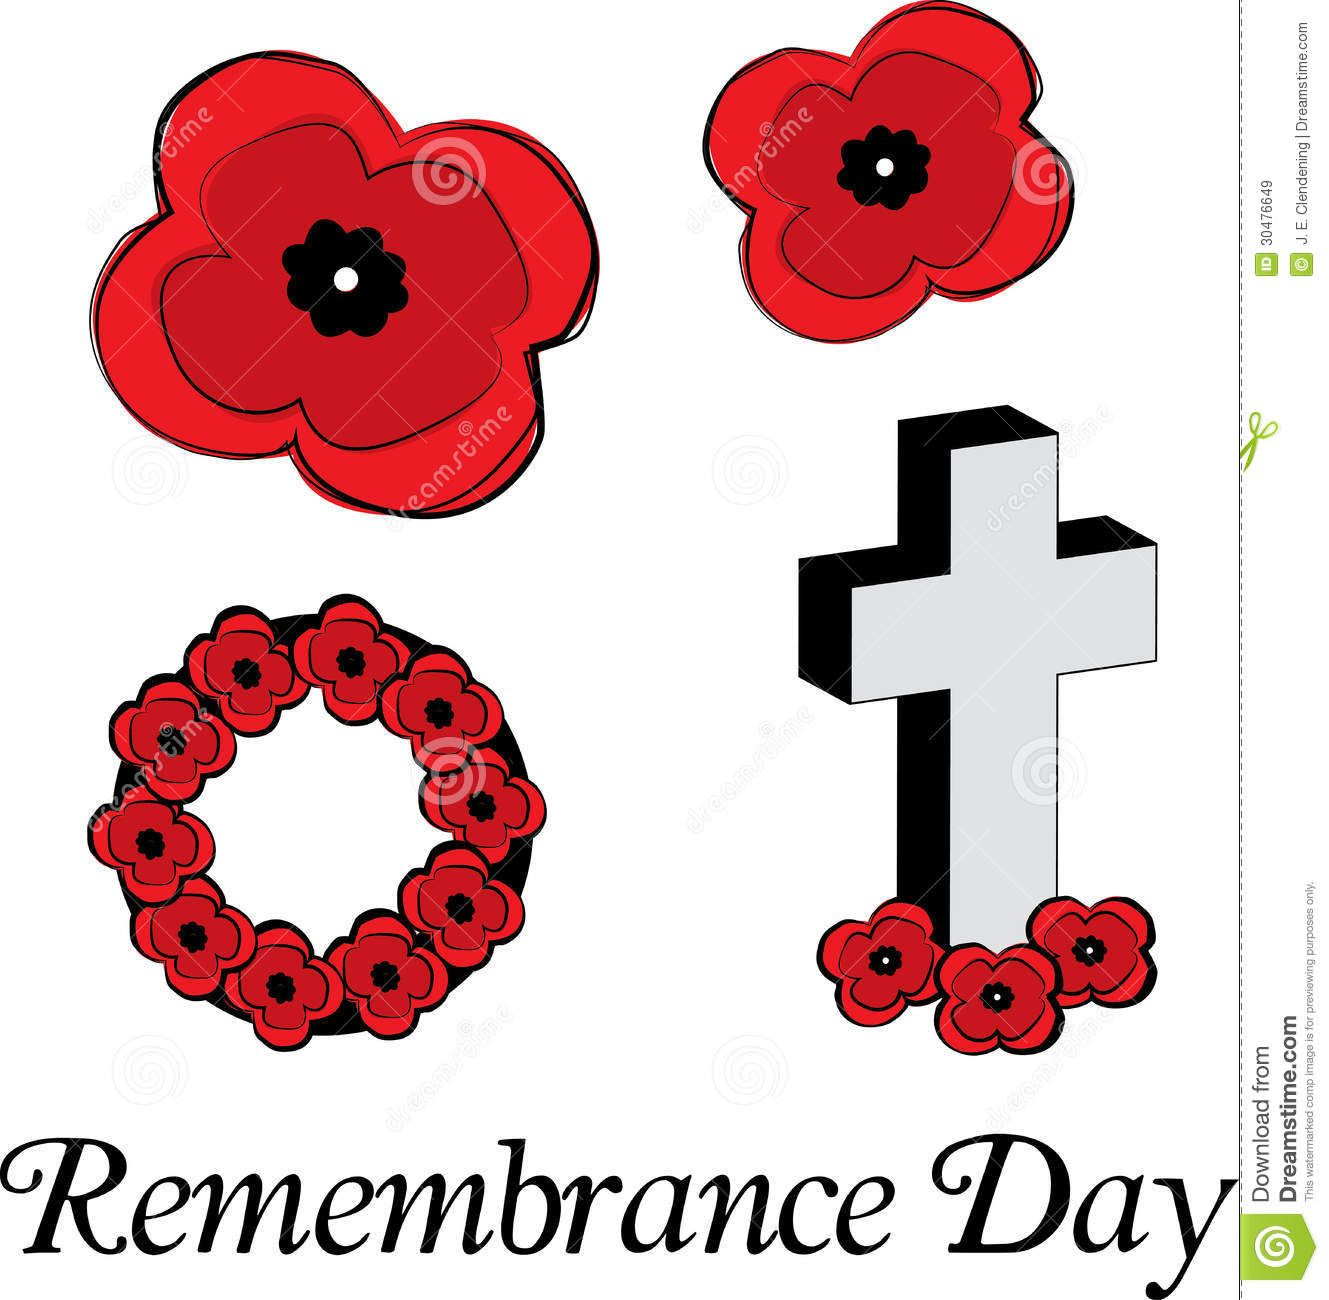 Remembrance Day Poppy Flowers Clipart